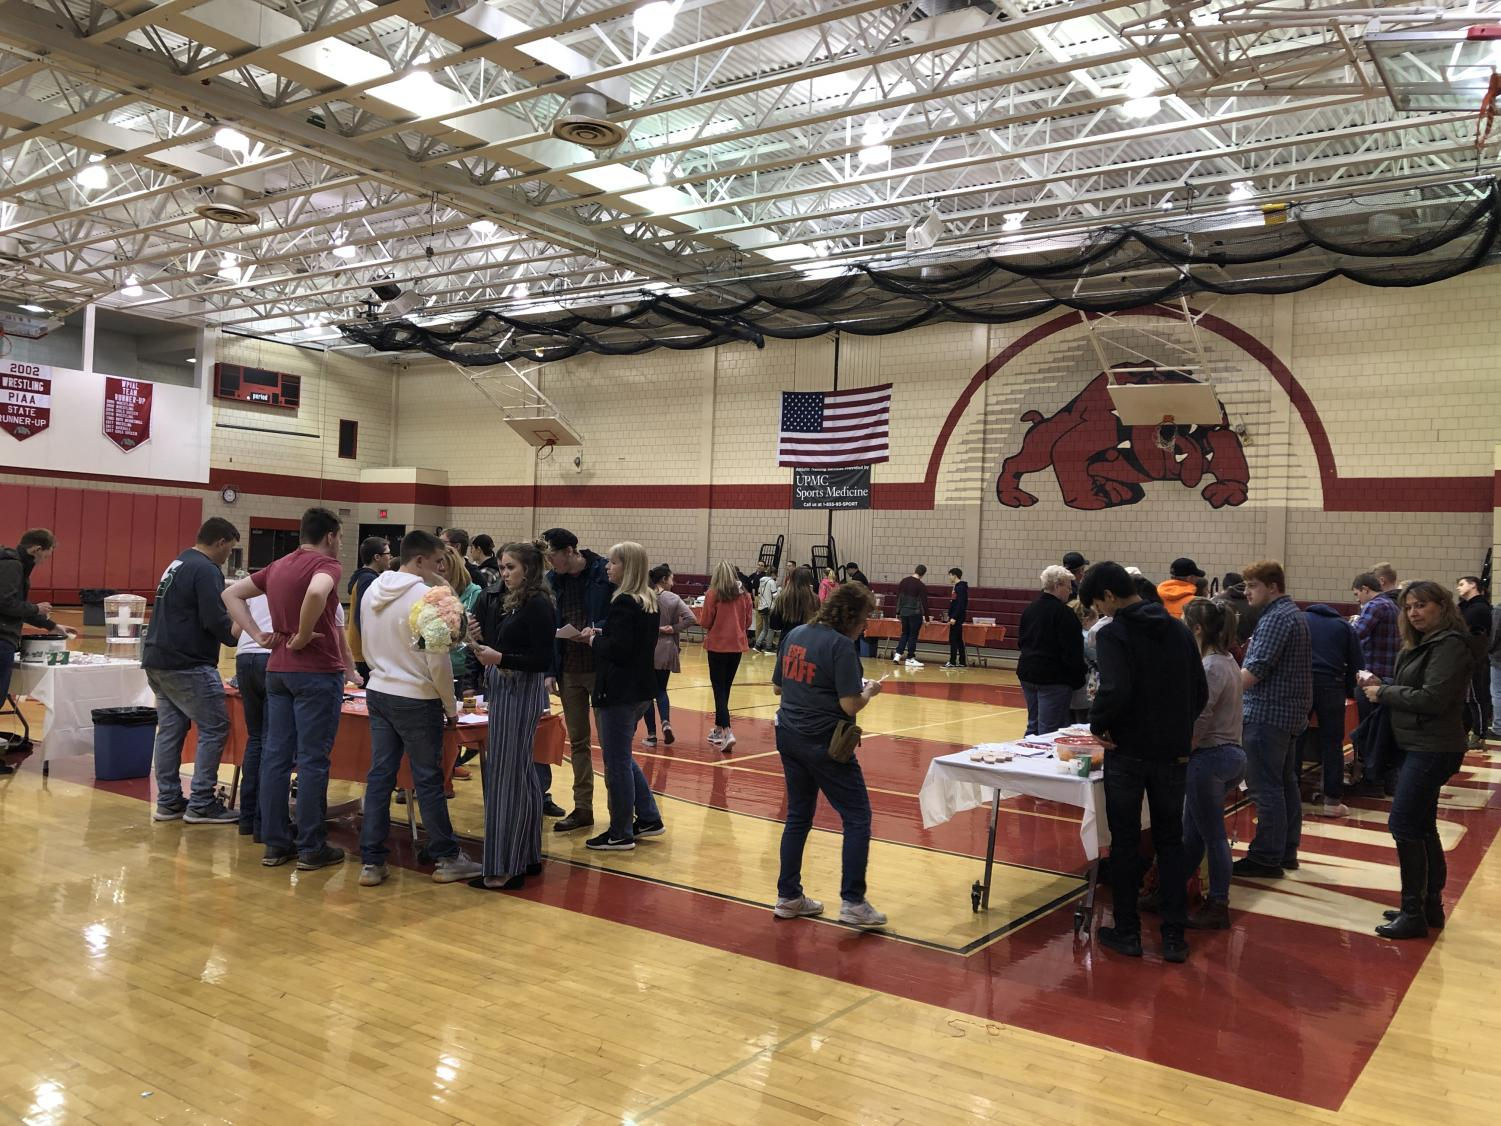 Tables were set up in the high school gymnasium for all of the students' foods to be put out on. Participants and community members were able to go around the tables and try out all of the healthy foods.